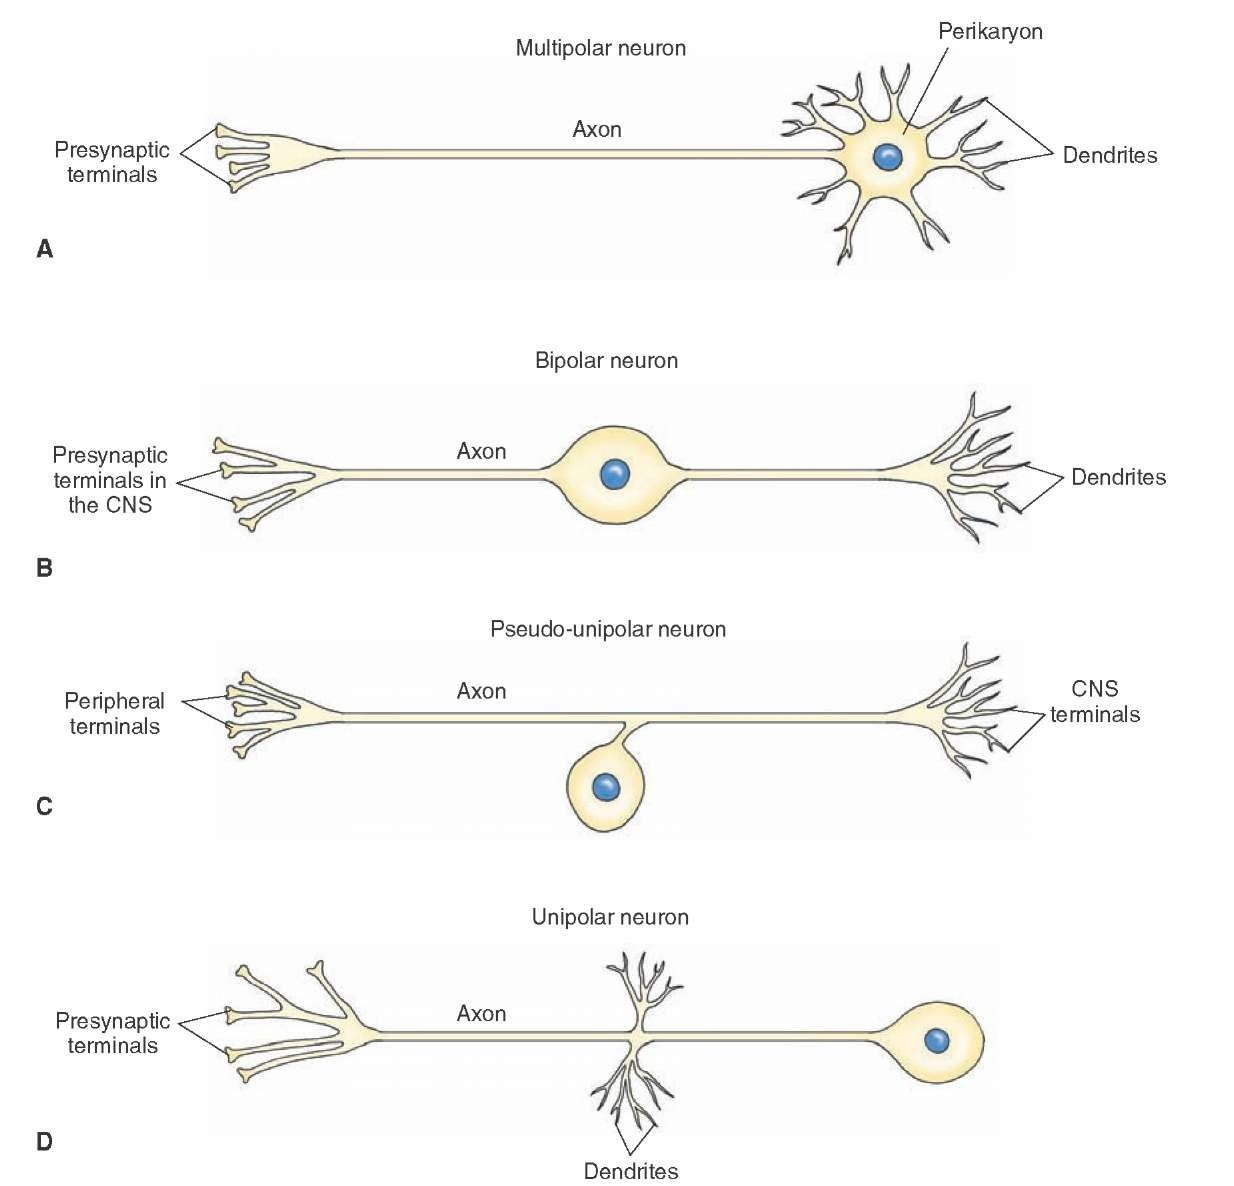 Different Types Of Neurons A Multipolar Neuron B